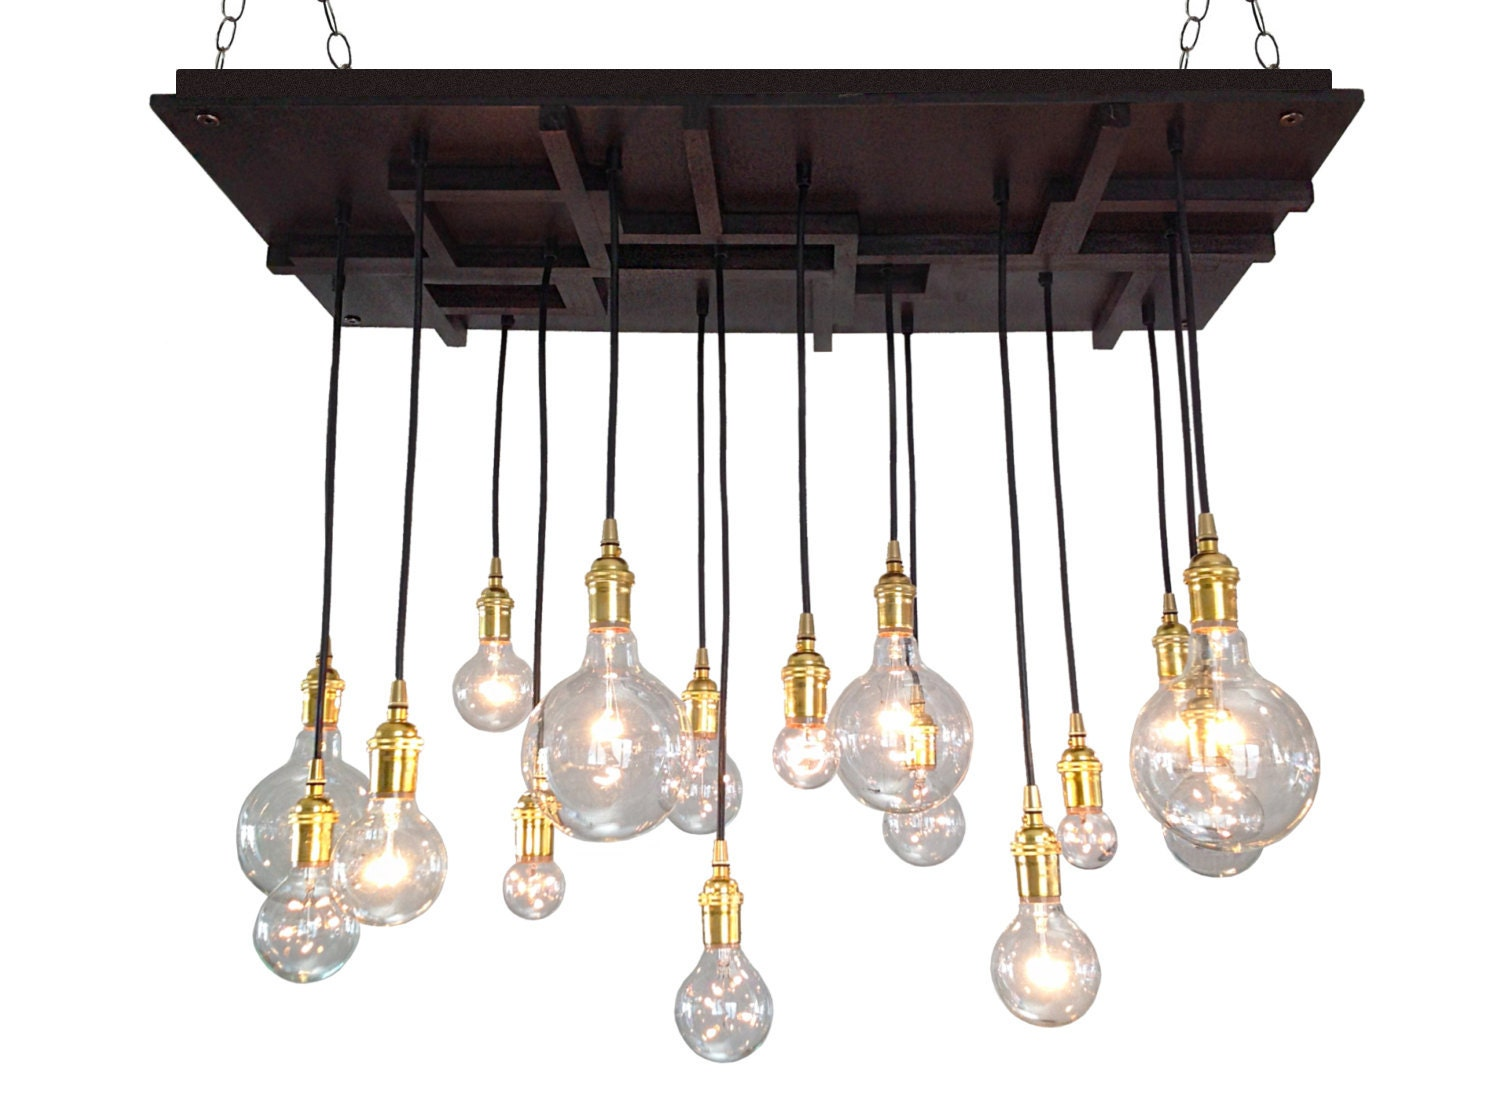 Arts and crafts mission style chandelier mission style lighting mid century light edison bulbs modern lighting craftsman